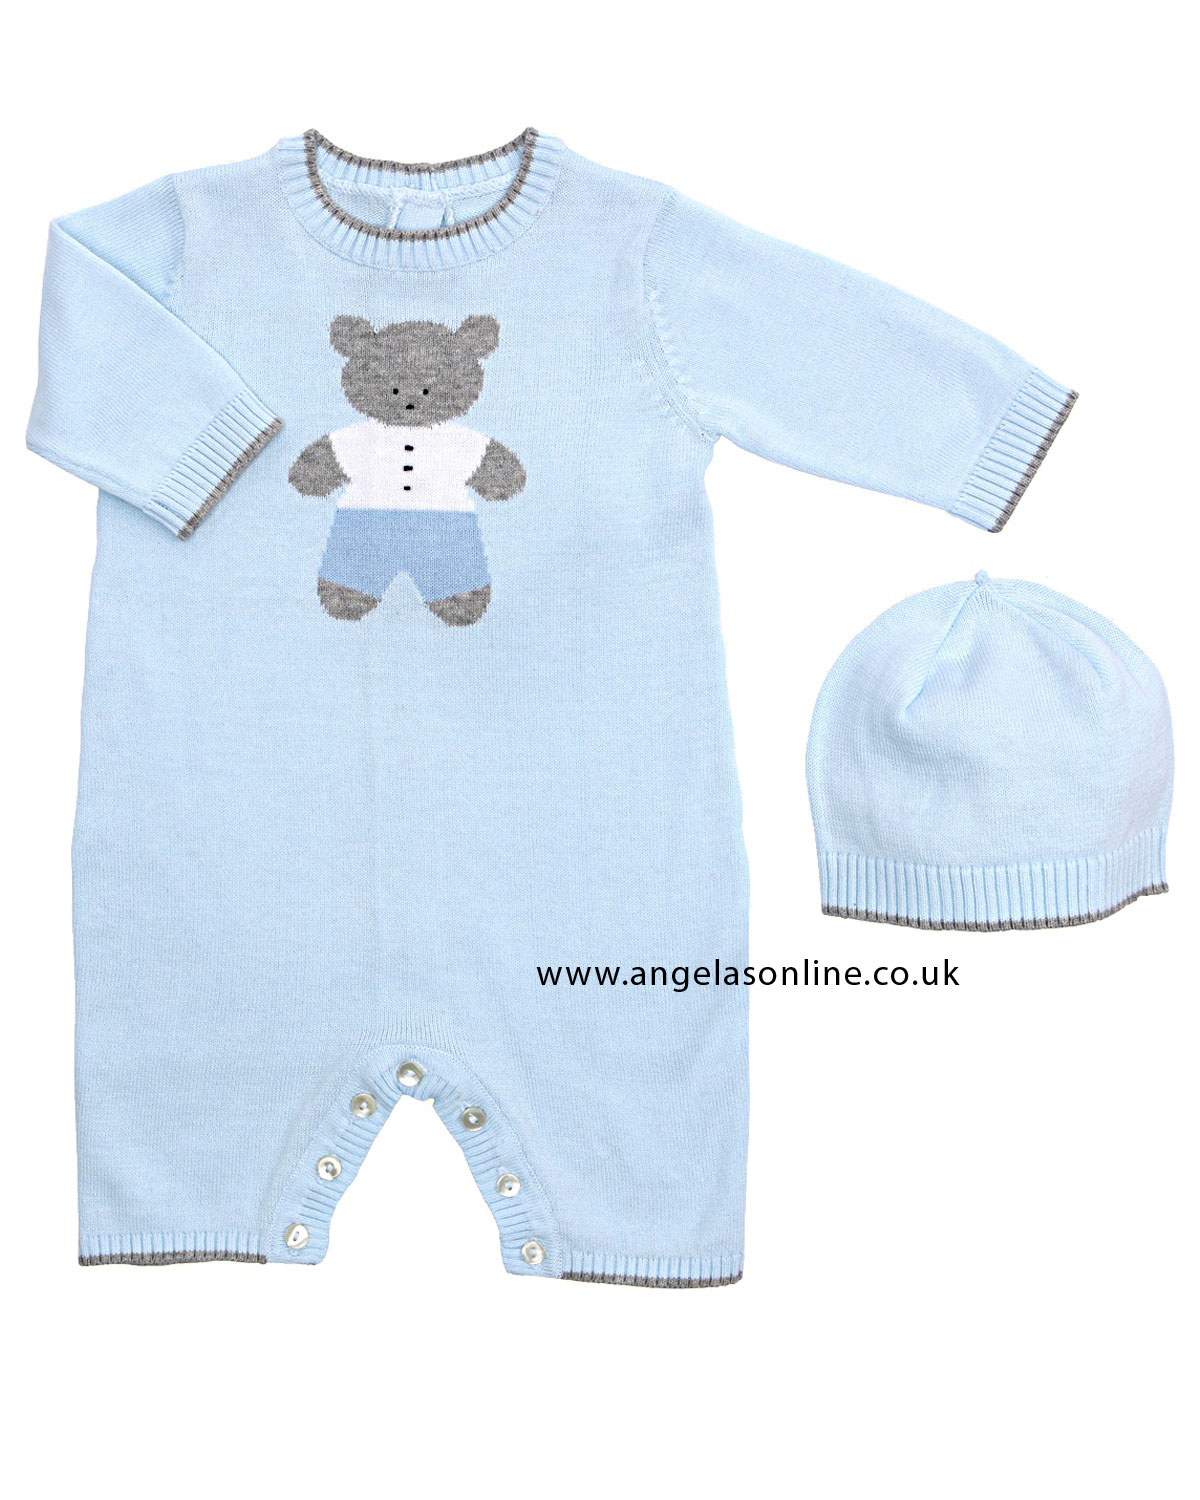 Newborn Size Clothes Baby Weight